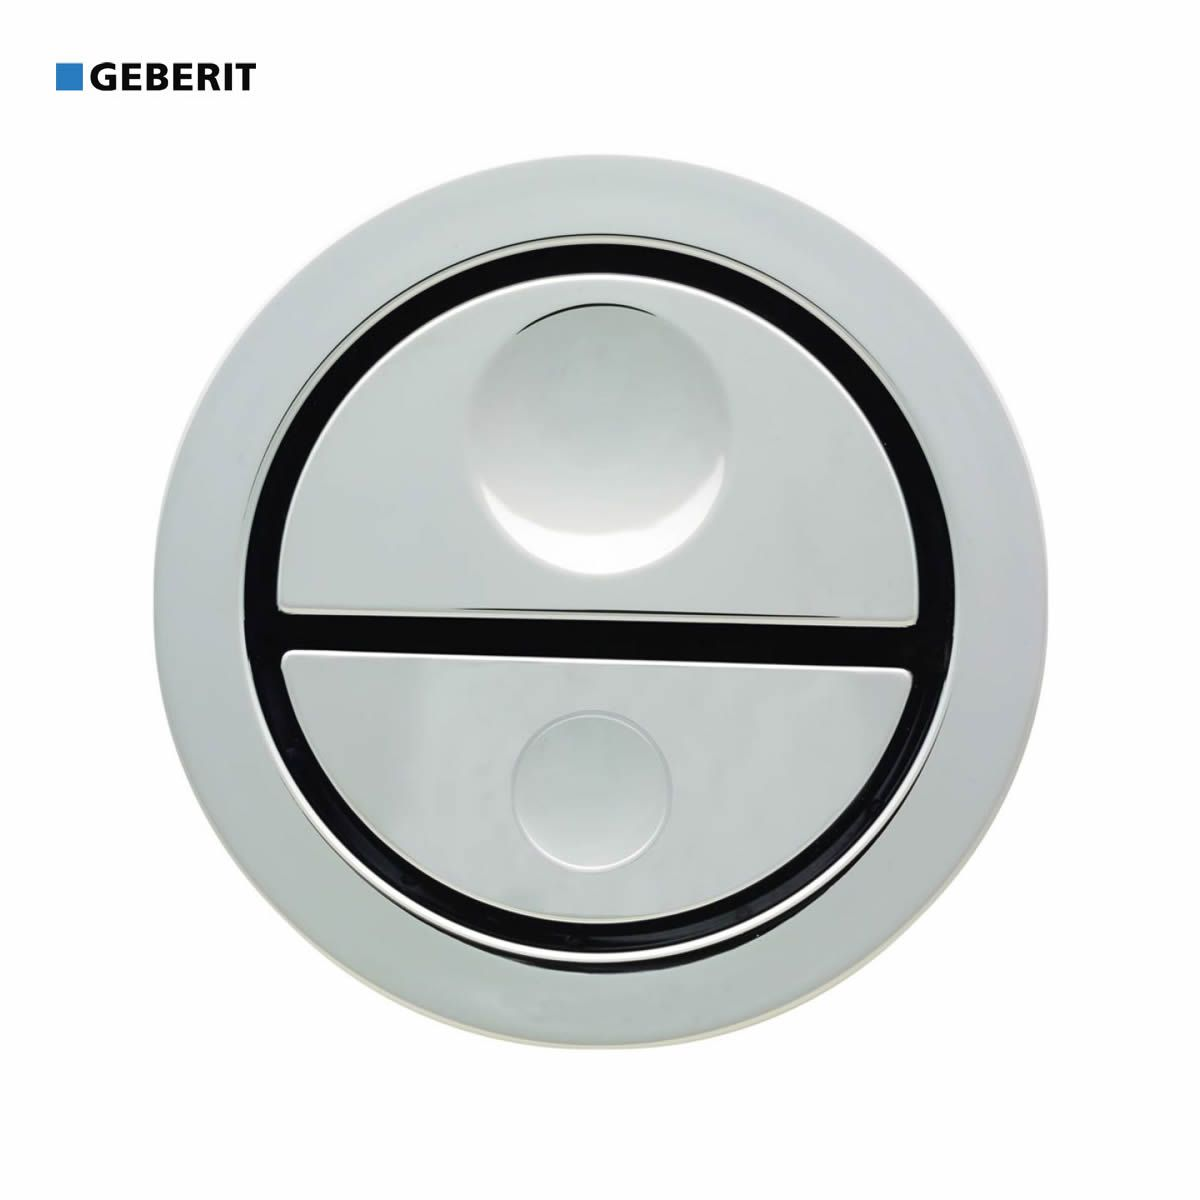 Geberit Dual Flush Pneumatic Finger Push Button Uk Bathrooms